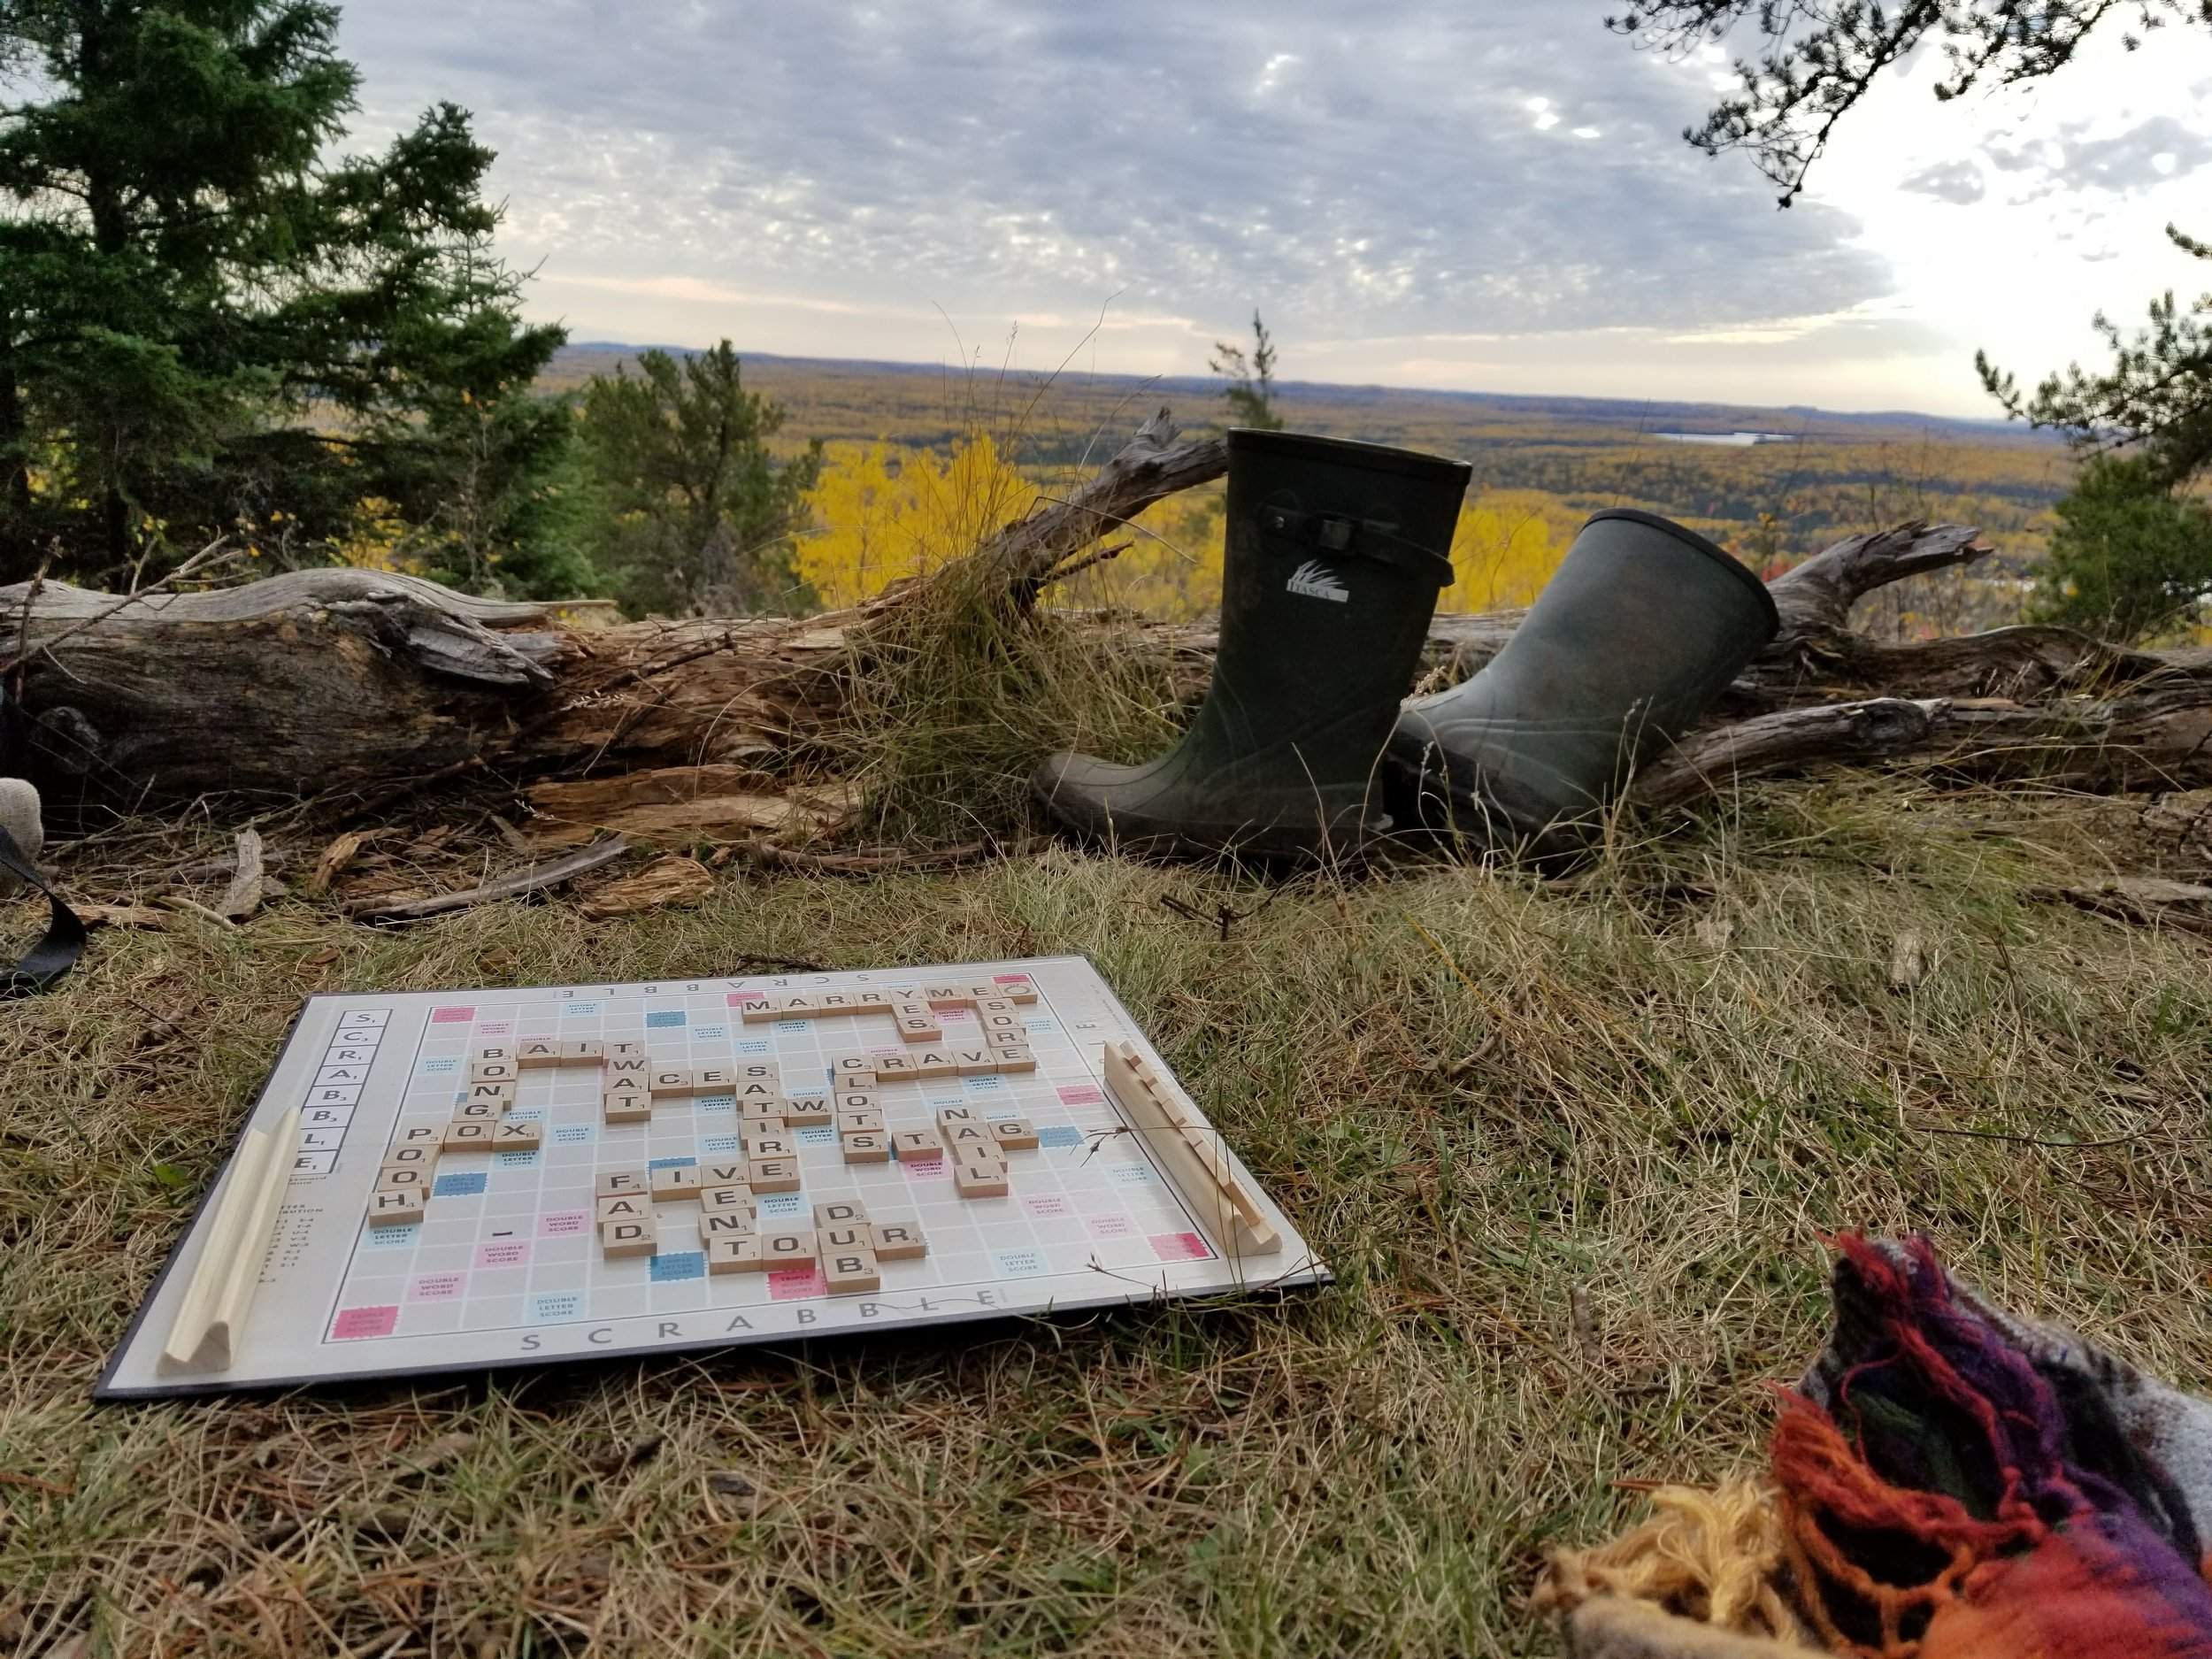 I'm CRAZY about words. So much so that I carried a scrabble board to the top of a mountain!